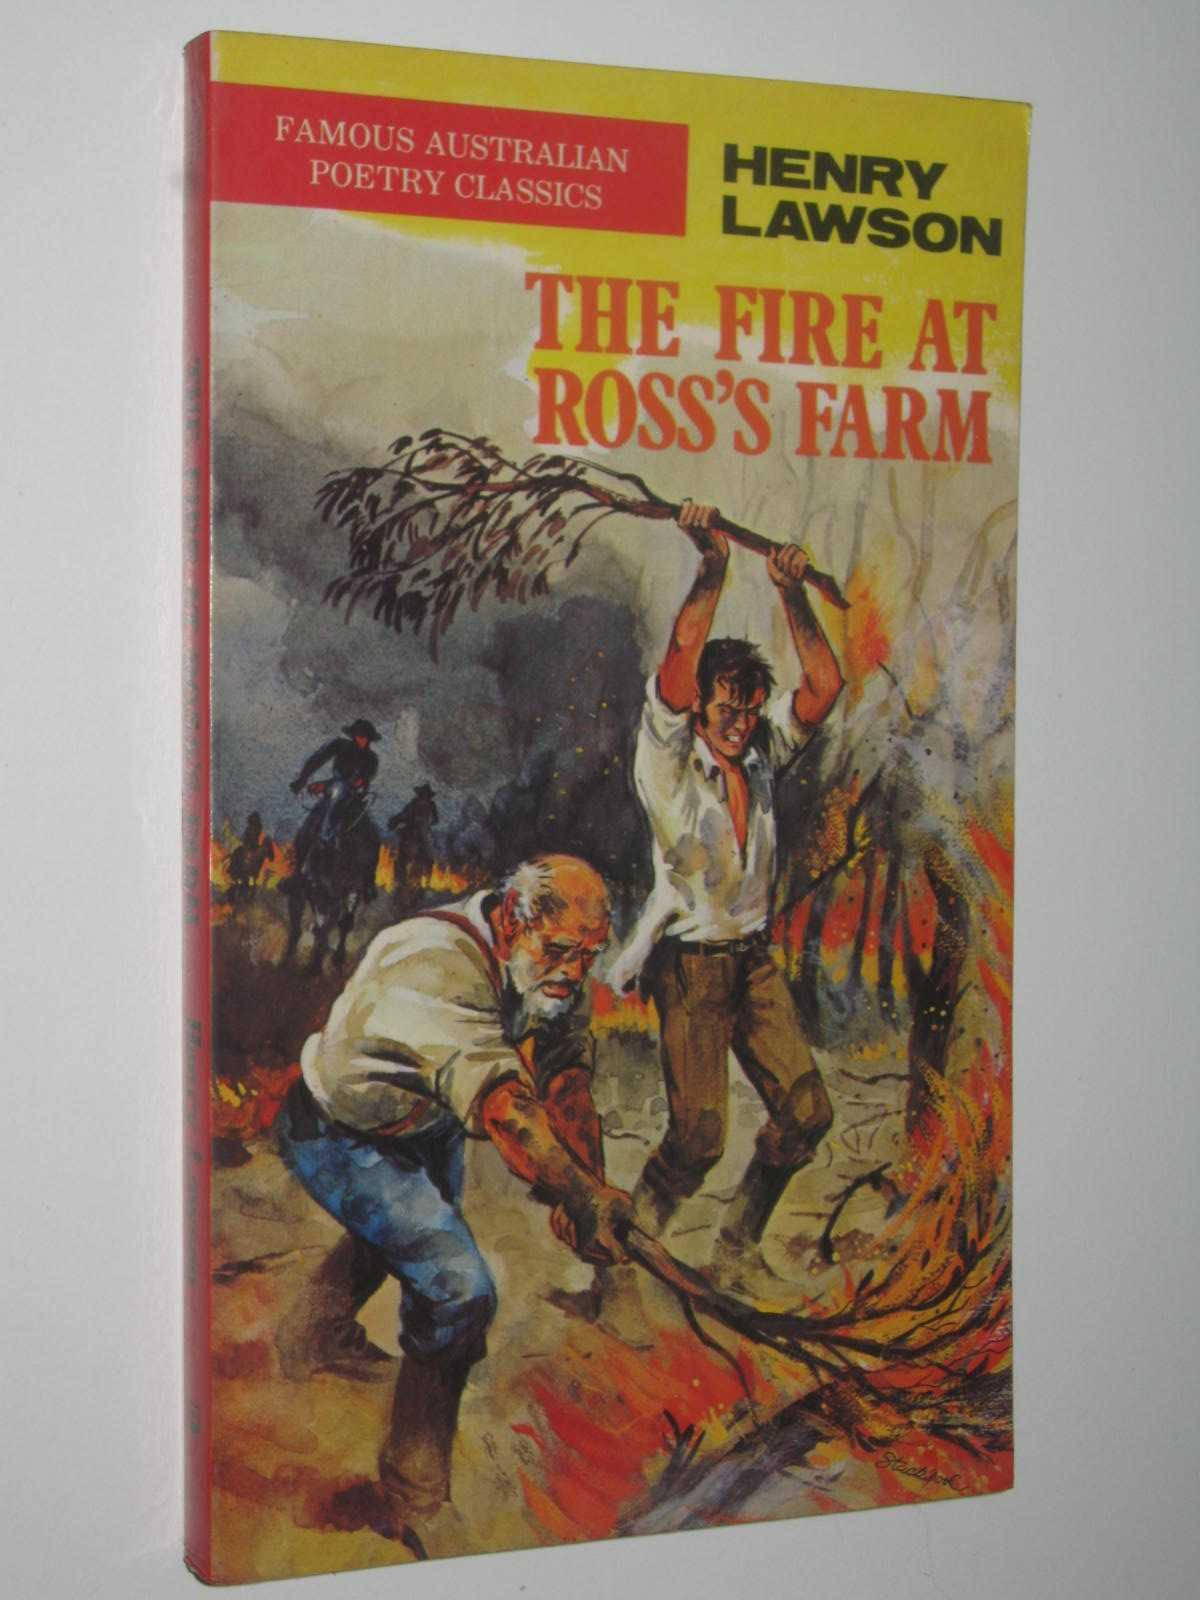 Image for The Fire at Ross's Farm - Famous Australian Poetry Classics Series